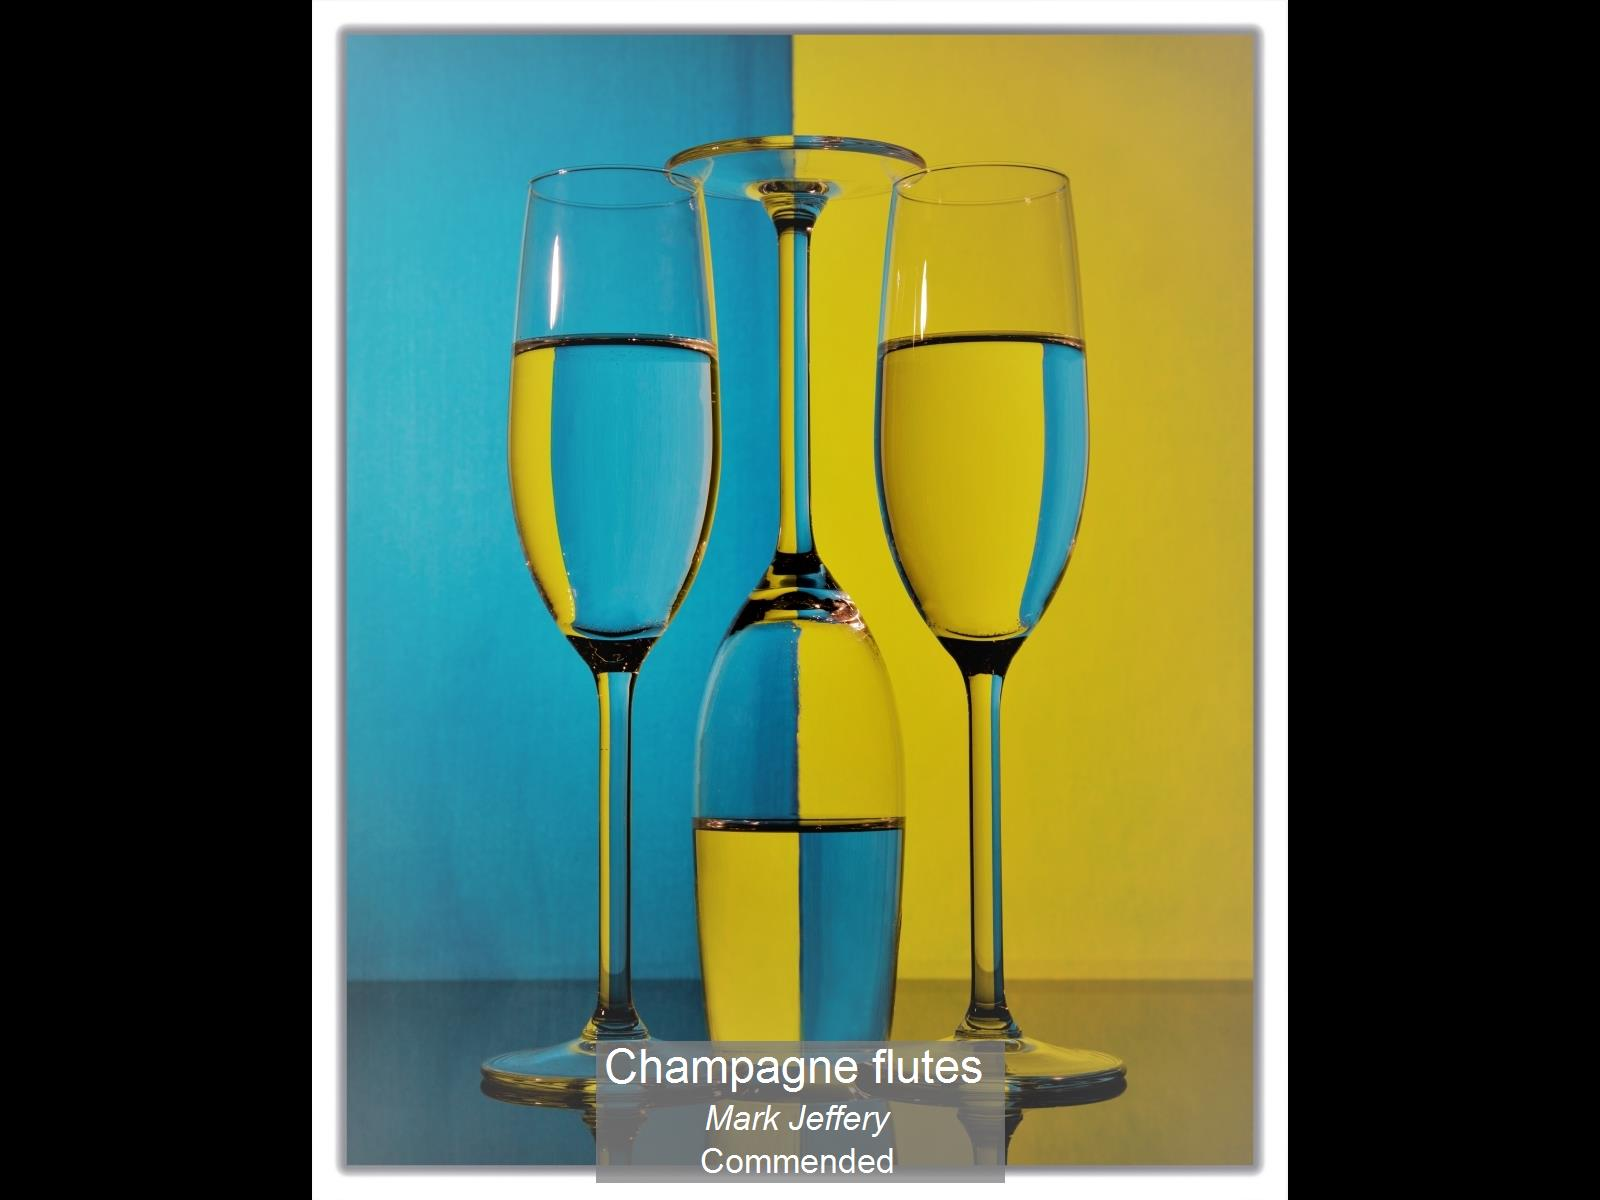 Comm_Champagne flutes_Mark Jeffery